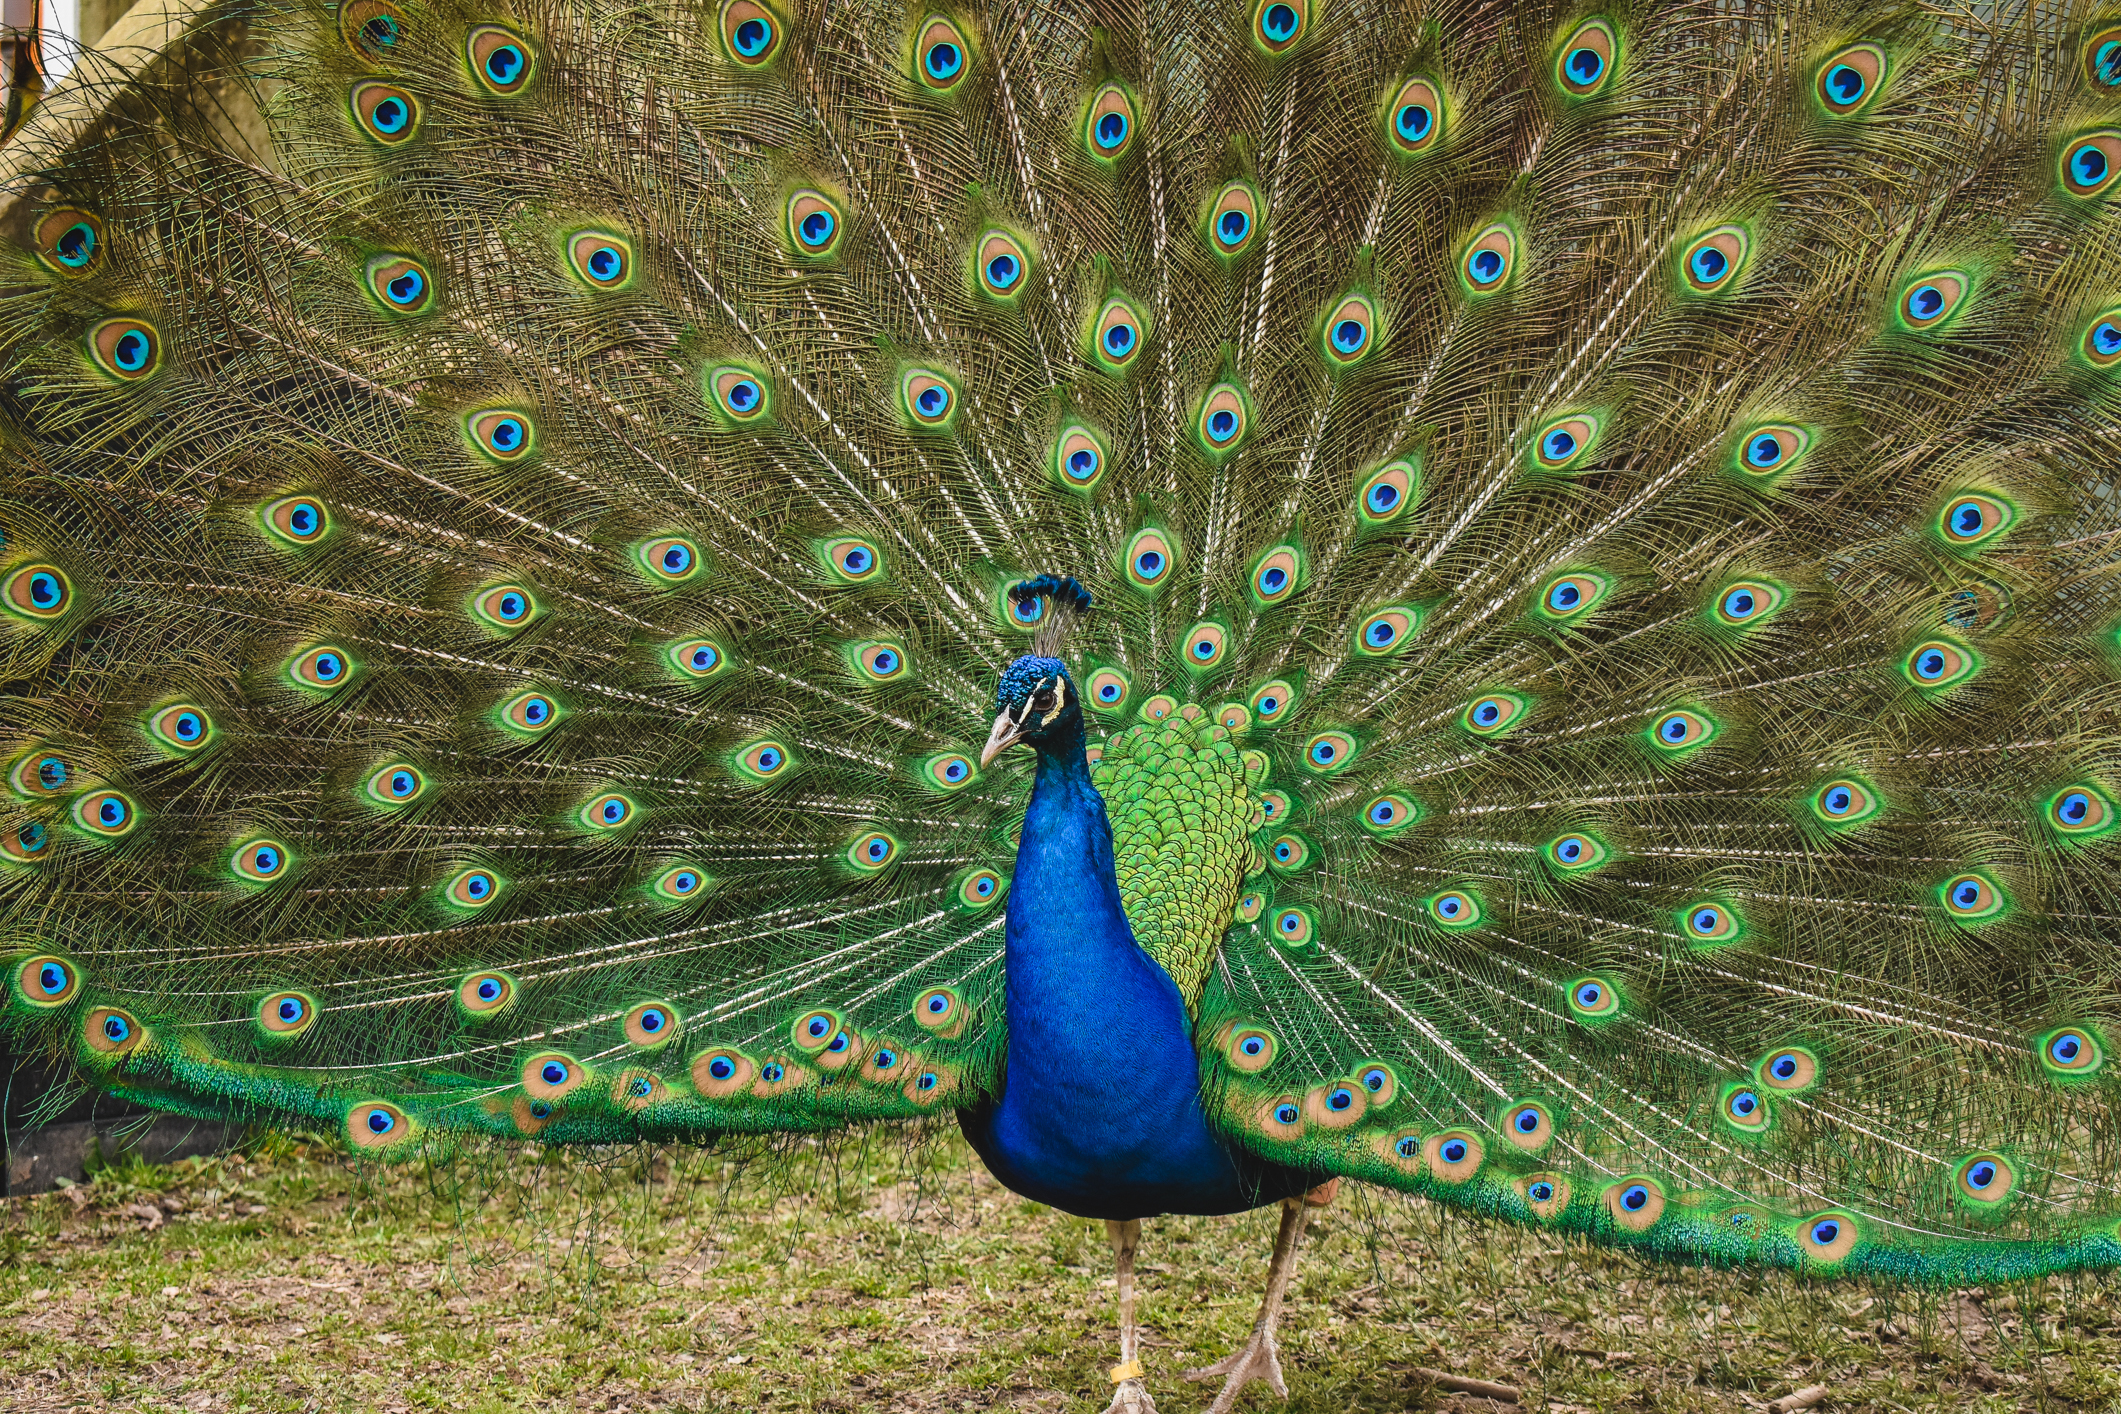 Common Peafowl fanning its feathers at the Virginia Zoo